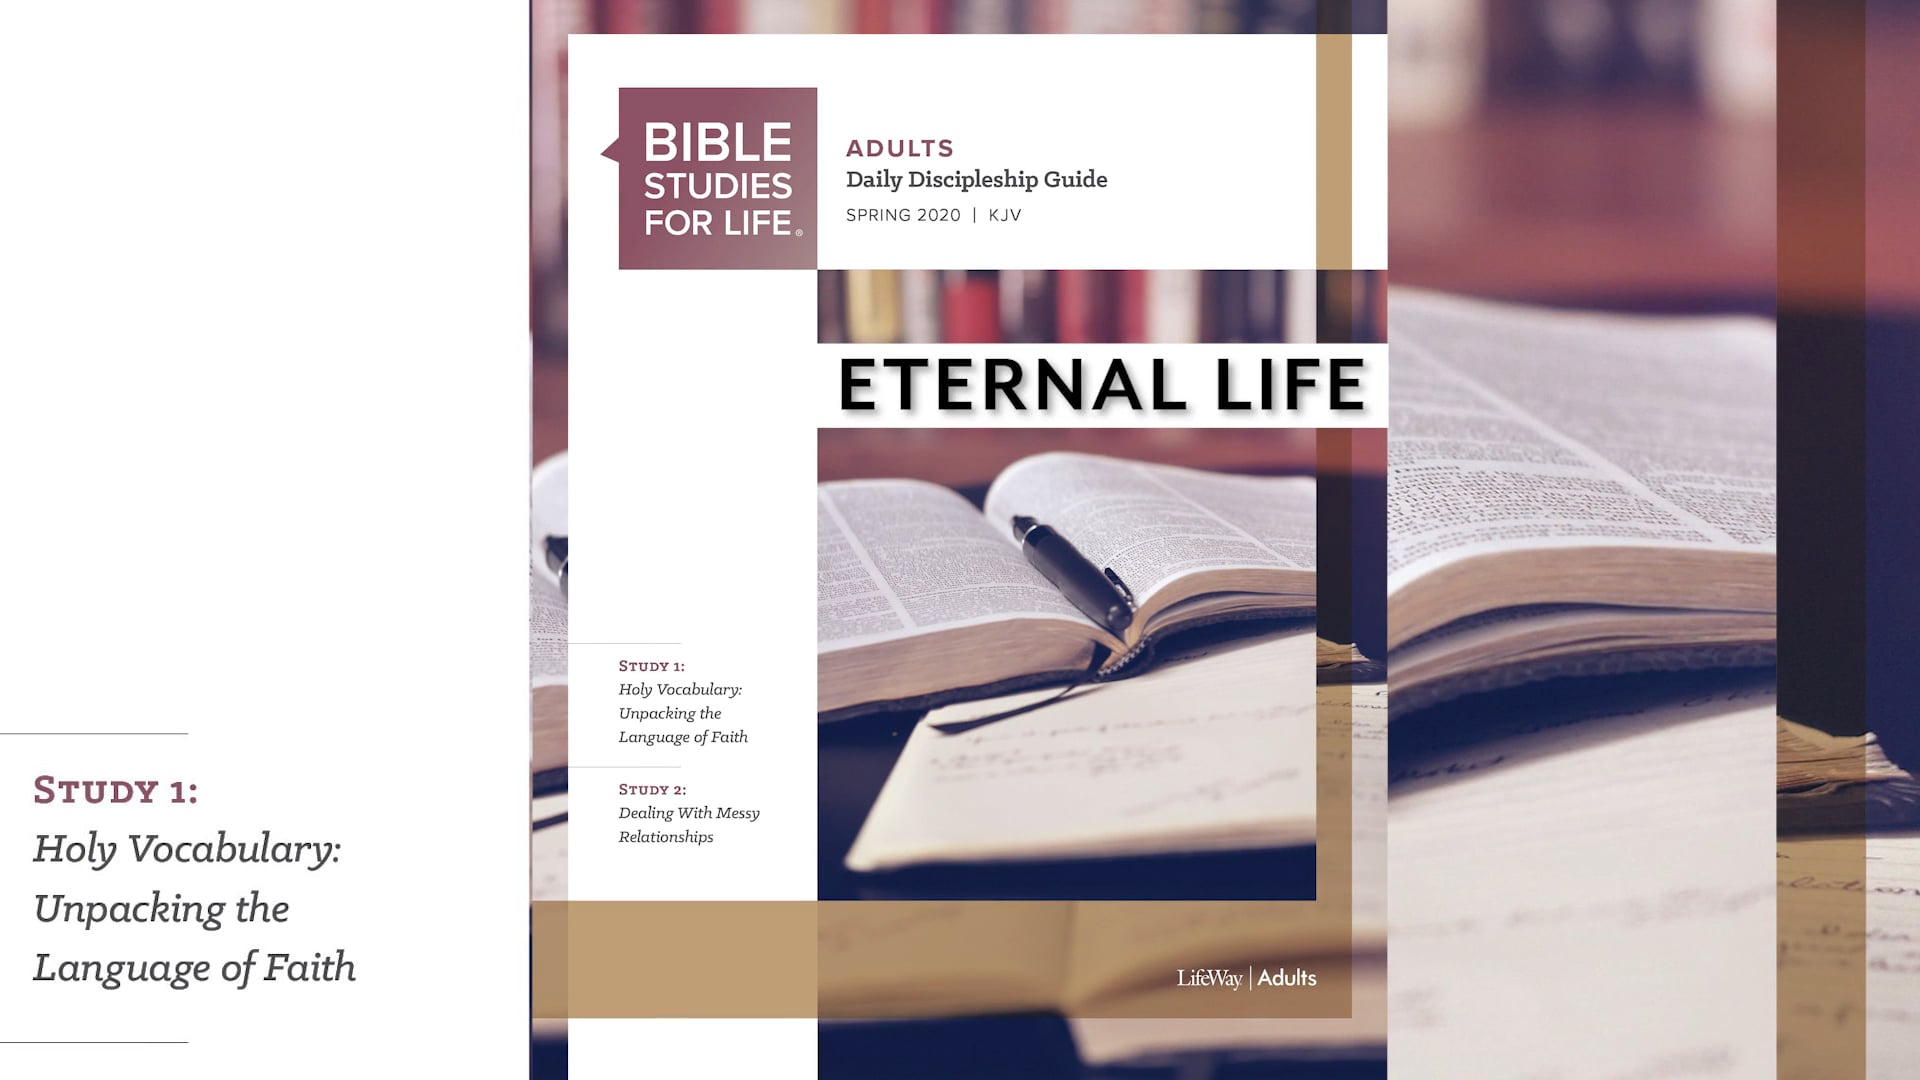 04.03.2020 Bible Studies for Life Tommy Ricky FBCPC